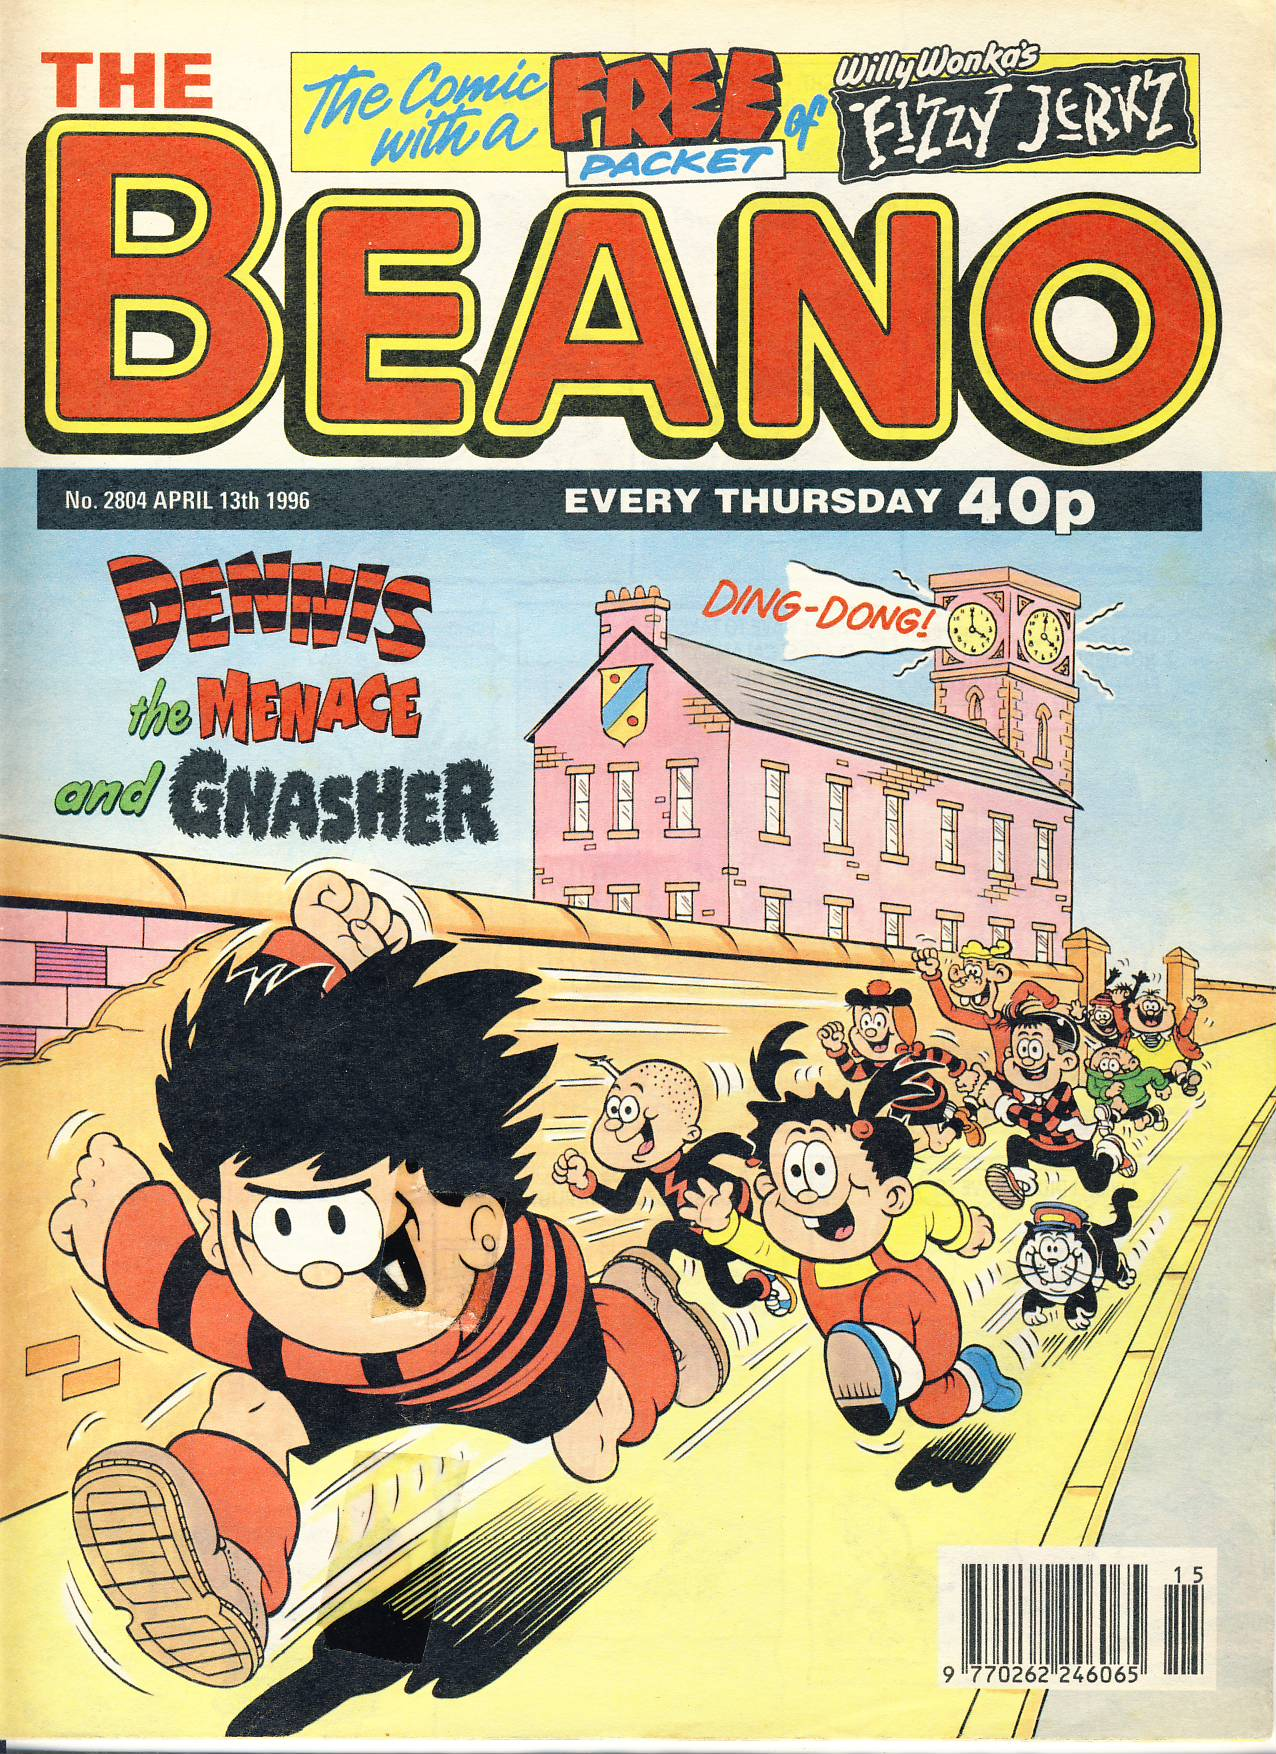 1996 April 13th BEANO vintage comic Good Gift Christmas Present Birthday Anniversary ref214 a pre-owned item in very good read condition.